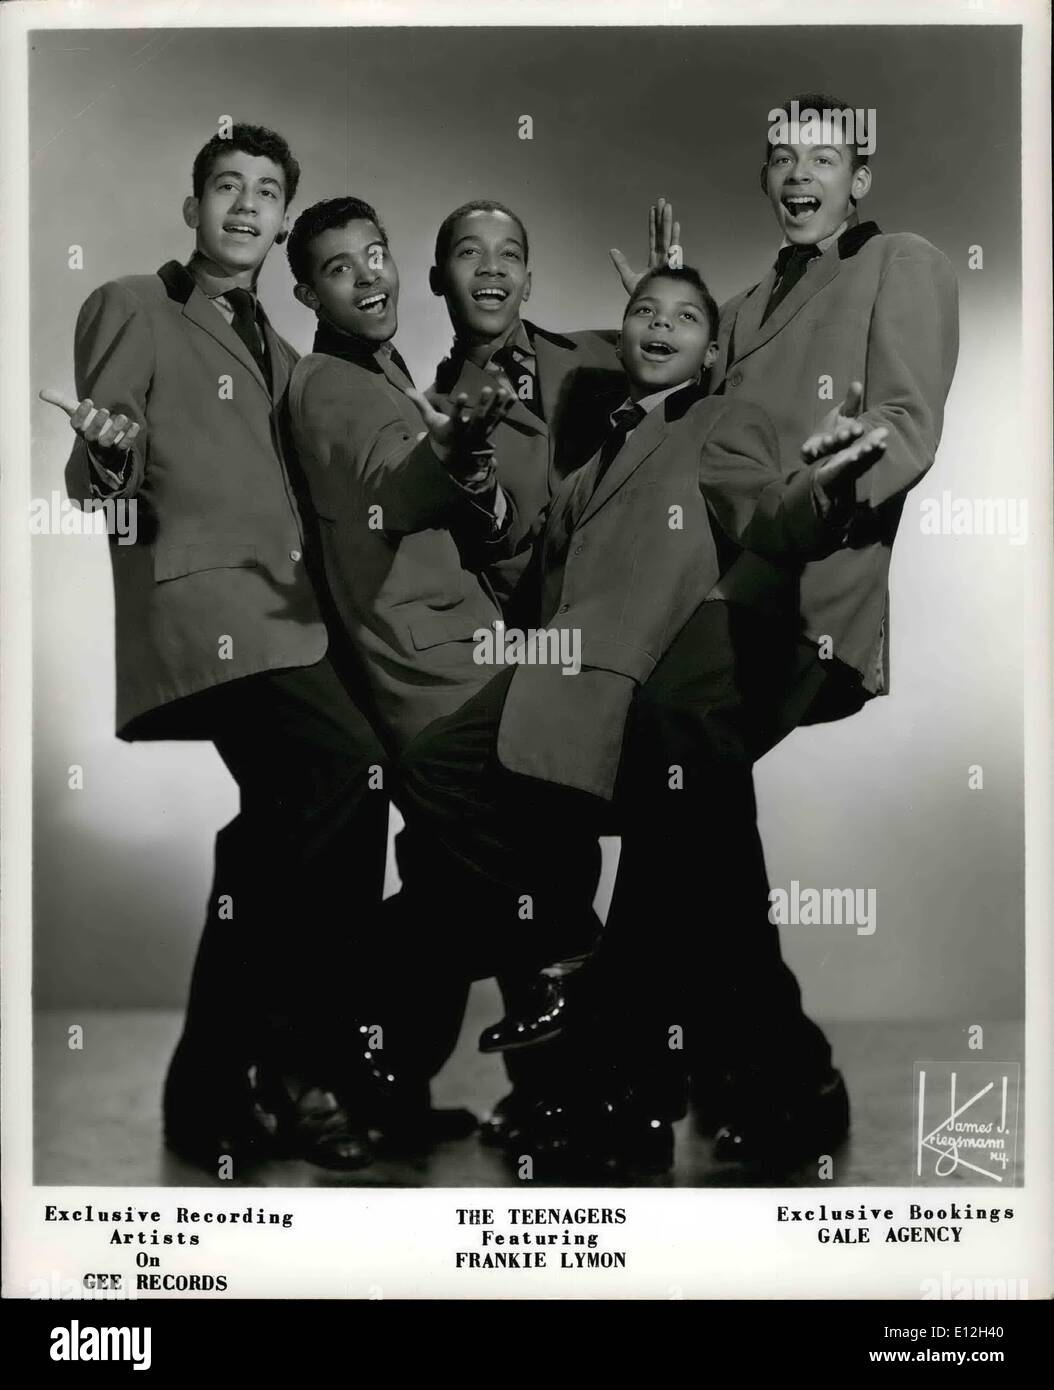 Jan. 03, 2012 - Exclusive Recording Artists On Gee Records The Teenagers Featuring Frankie Lymon Exclusive Booking s Gale Agency - Stock Image